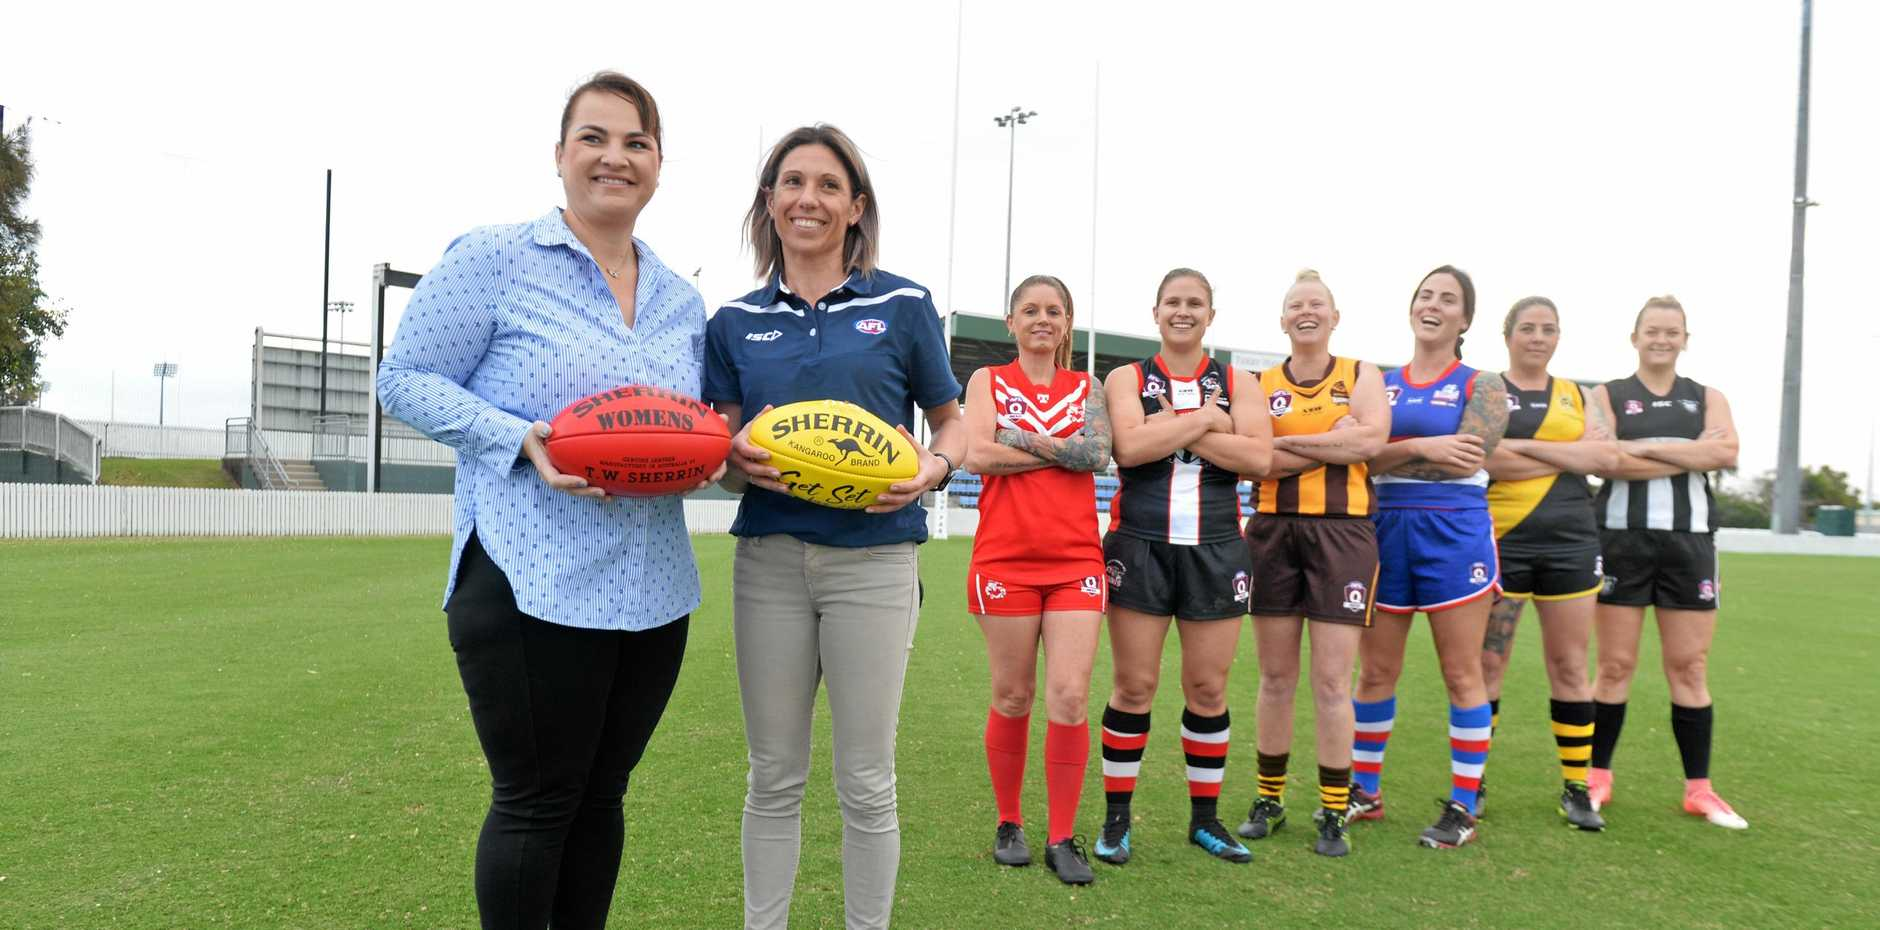 McDonalds local licensee, Niki Ramsay and new Mackay AFL competition manager Christina Likos announcing the partnership between Mackay AFL and McDonalds.